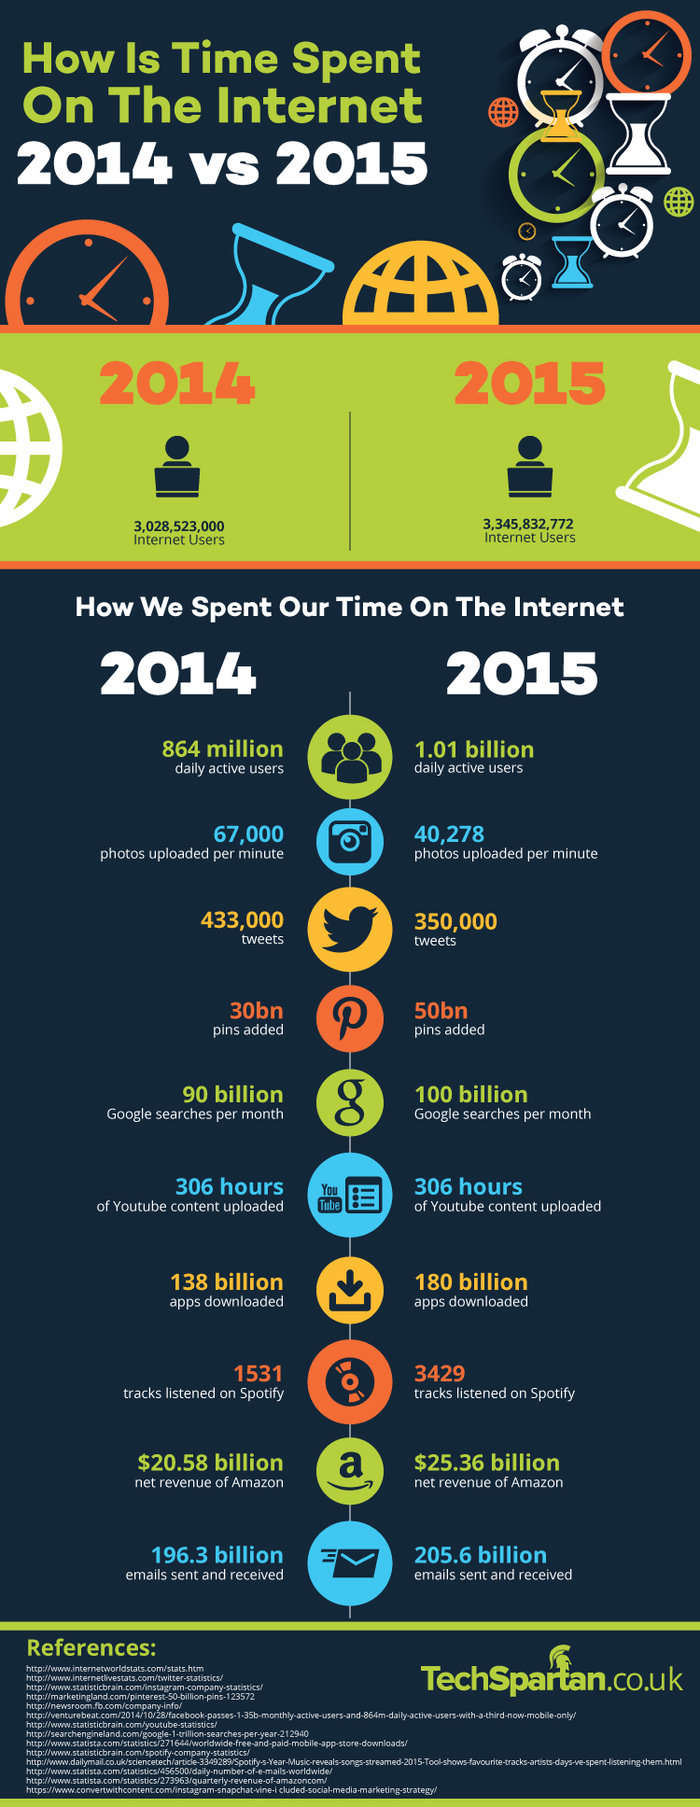 How Time Is Spent On The Internet 2014 vs 2015